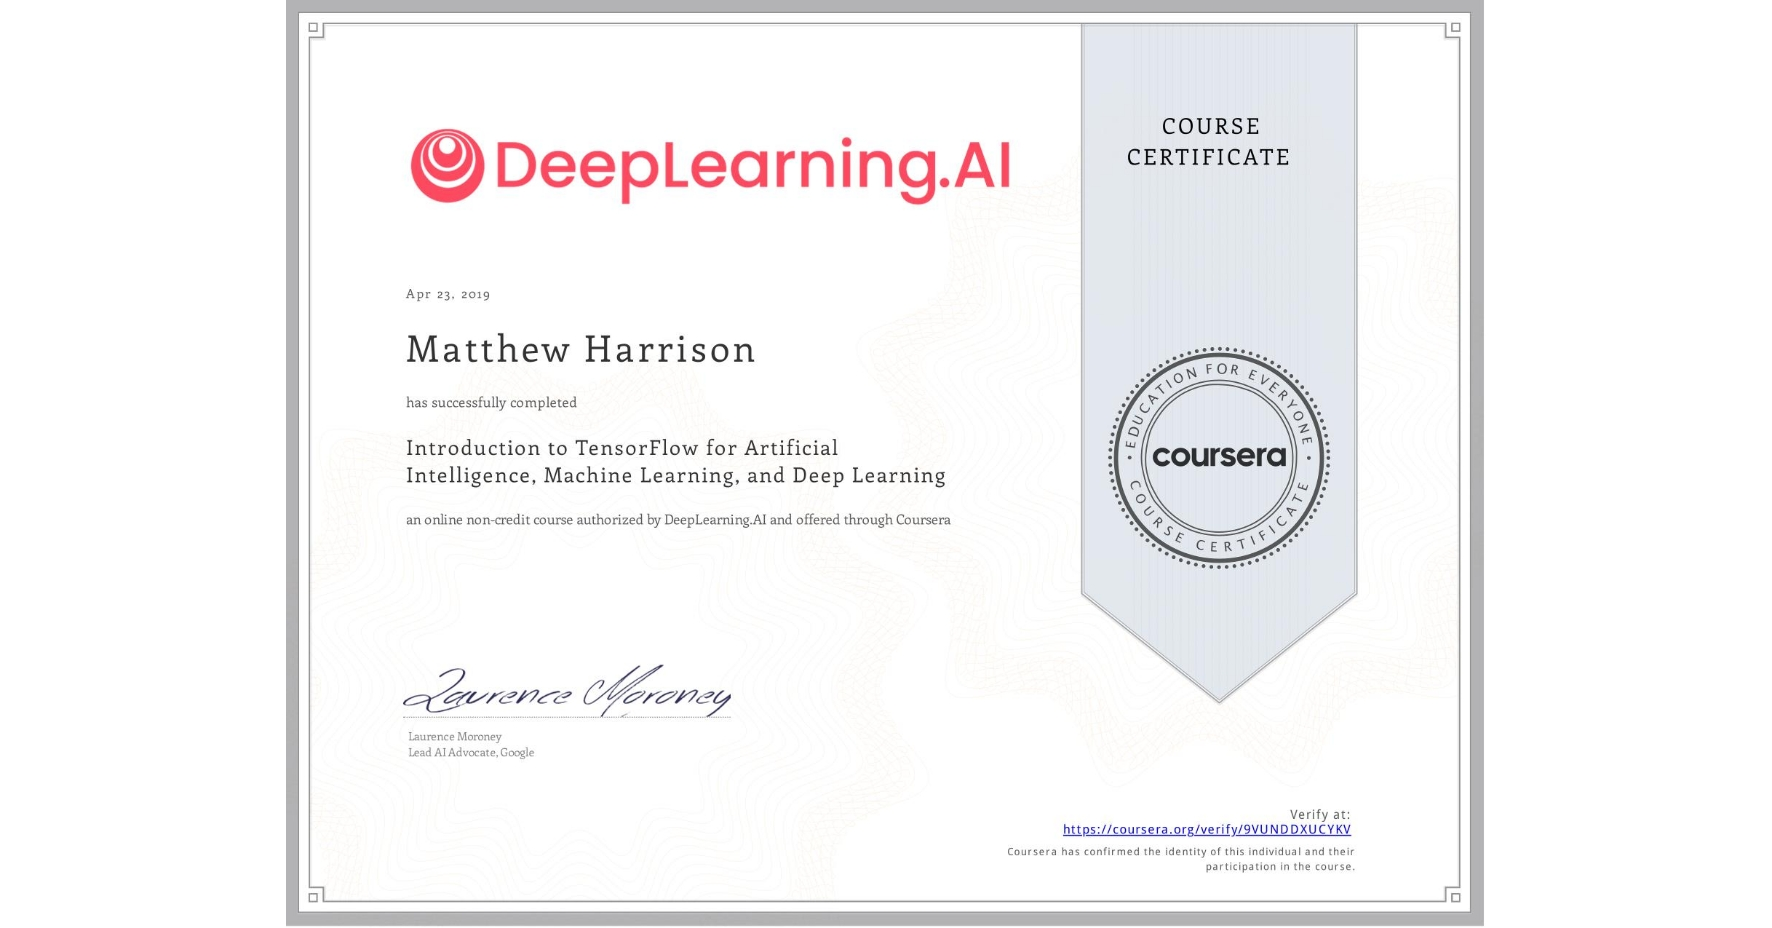 View certificate for Matthew Harrison, Introduction to TensorFlow for Artificial Intelligence, Machine Learning, and Deep Learning, an online non-credit course authorized by DeepLearning.AI and offered through Coursera